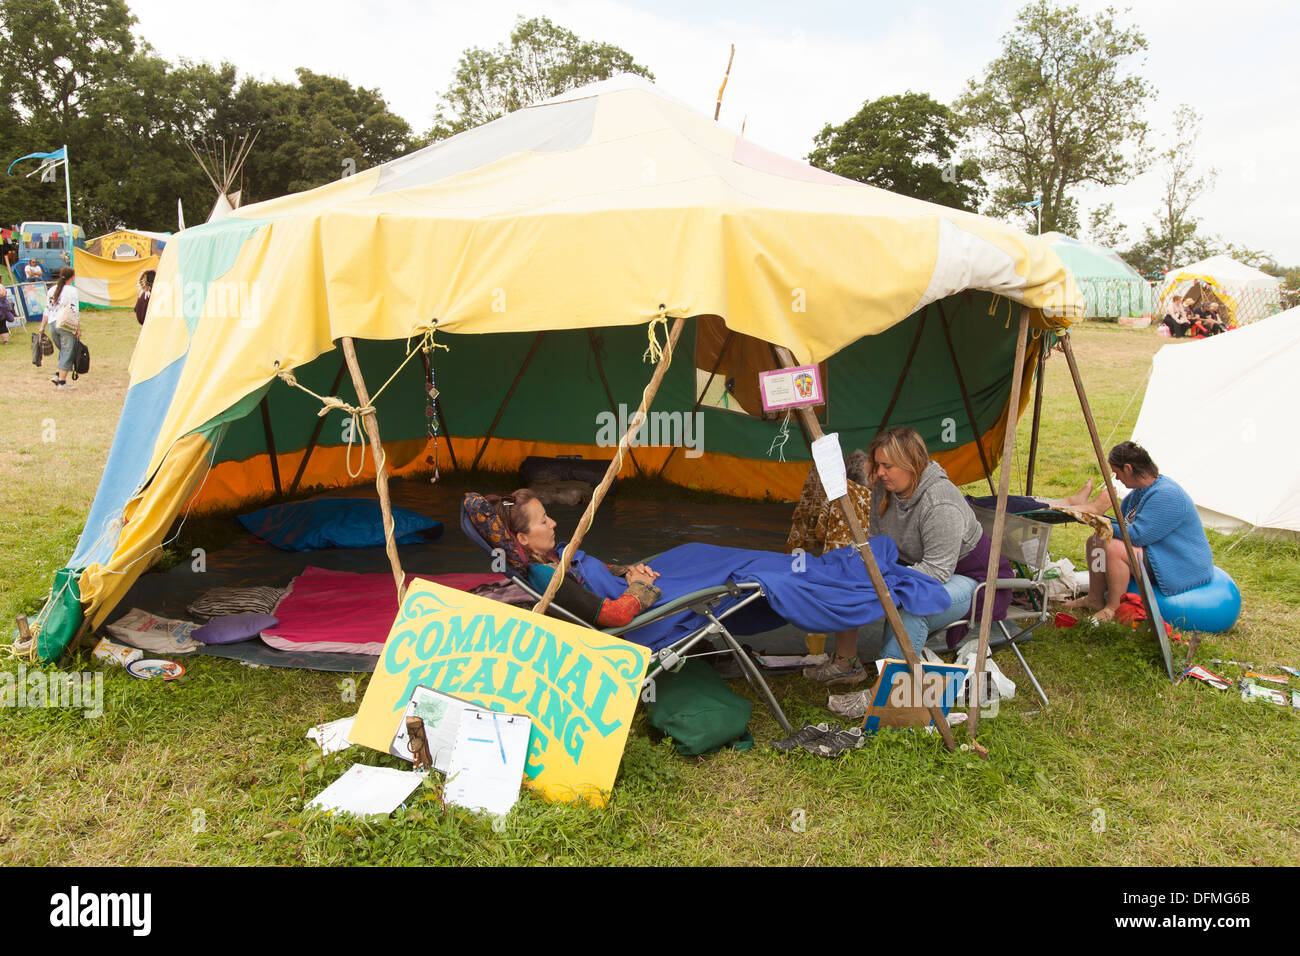 Communal healing tent Glastonbury Festival 2013 Somerest England United Kingdom & Communal healing tent Glastonbury Festival 2013 Somerest England ...